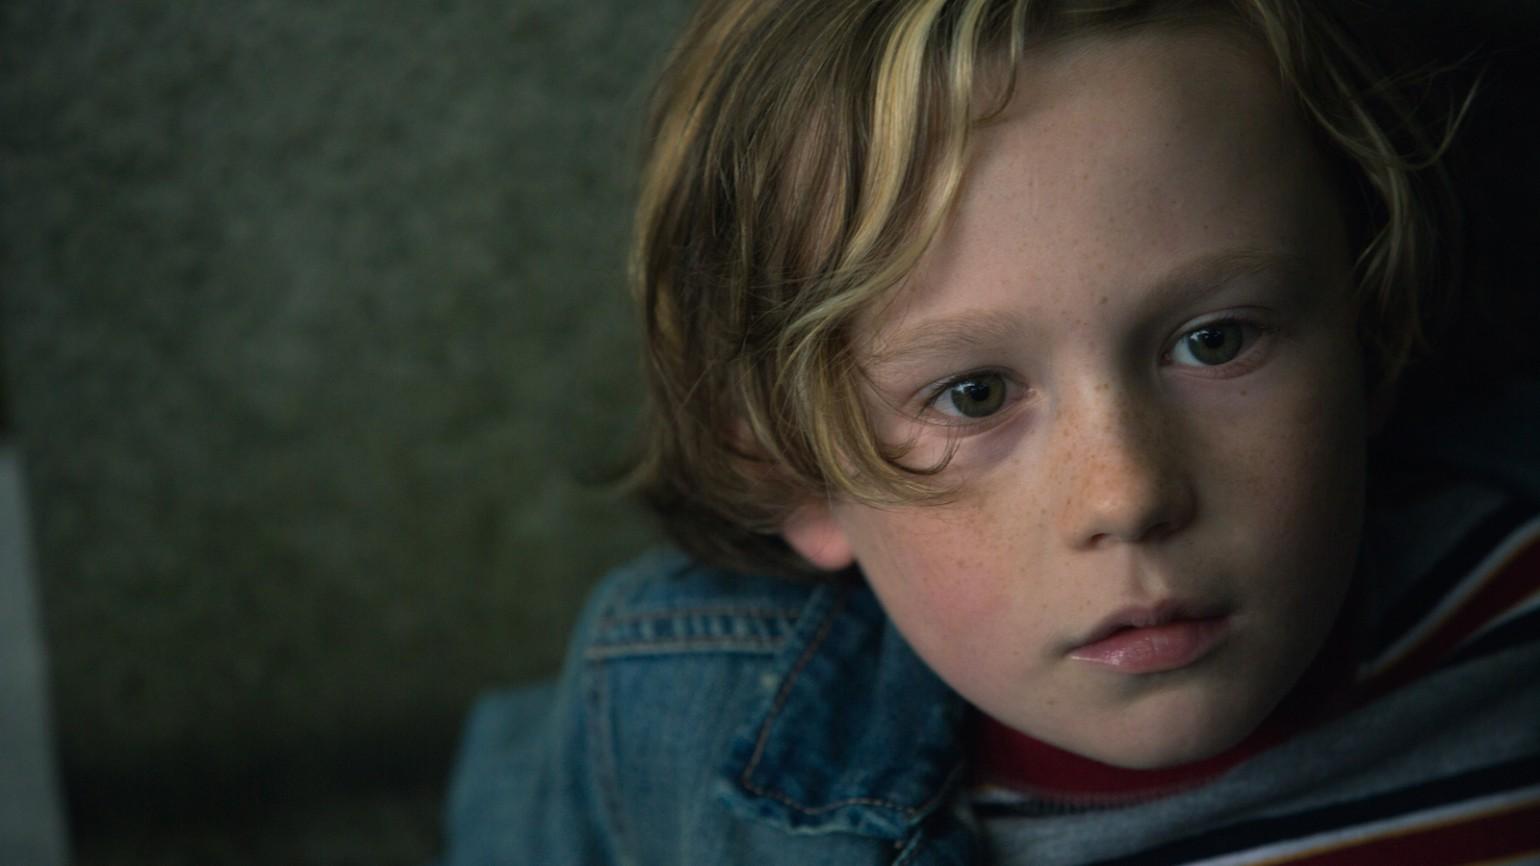 Jack Fulton plays the younger version of Oscar in Closet Monster.